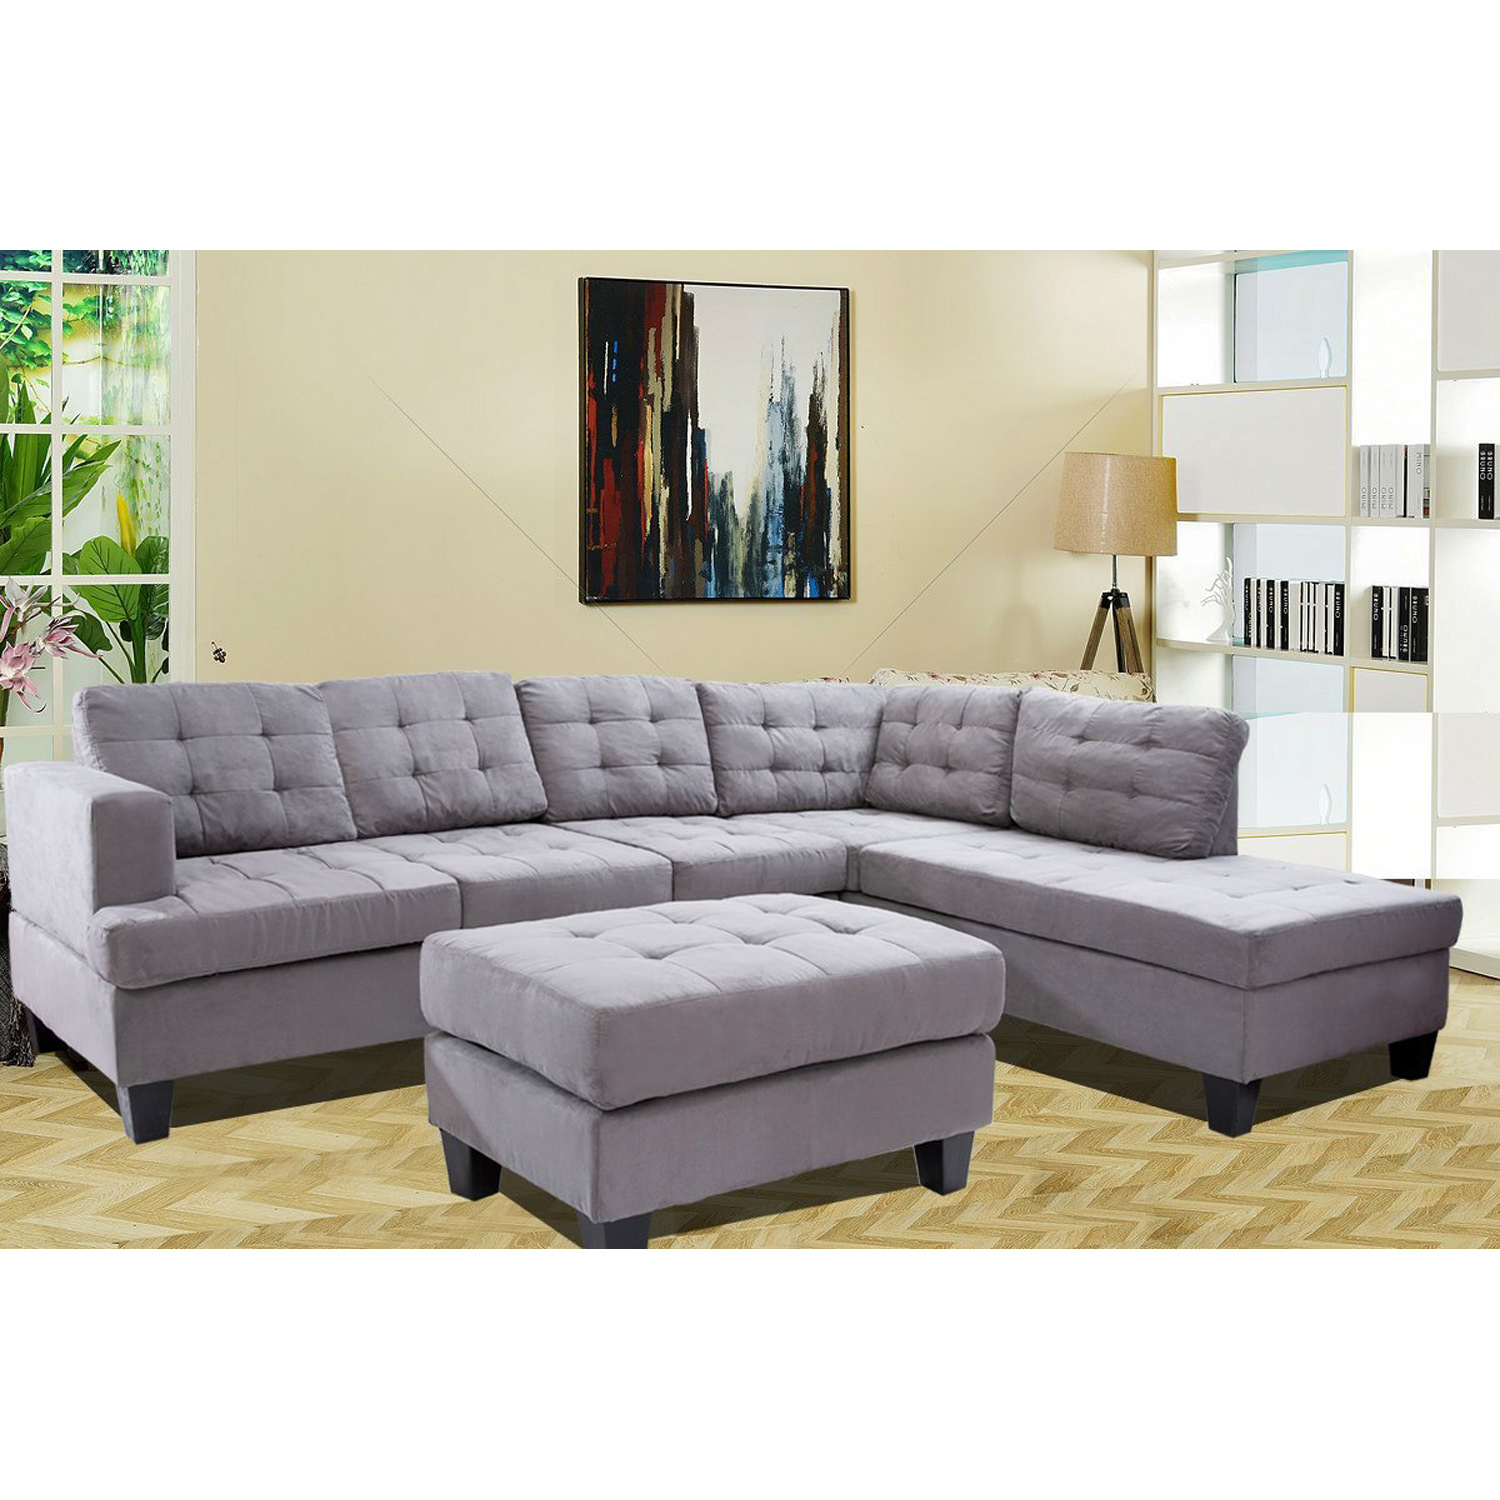 Merax 3 Piece Sectional Sofa With Chaise And Ottoman, Grey